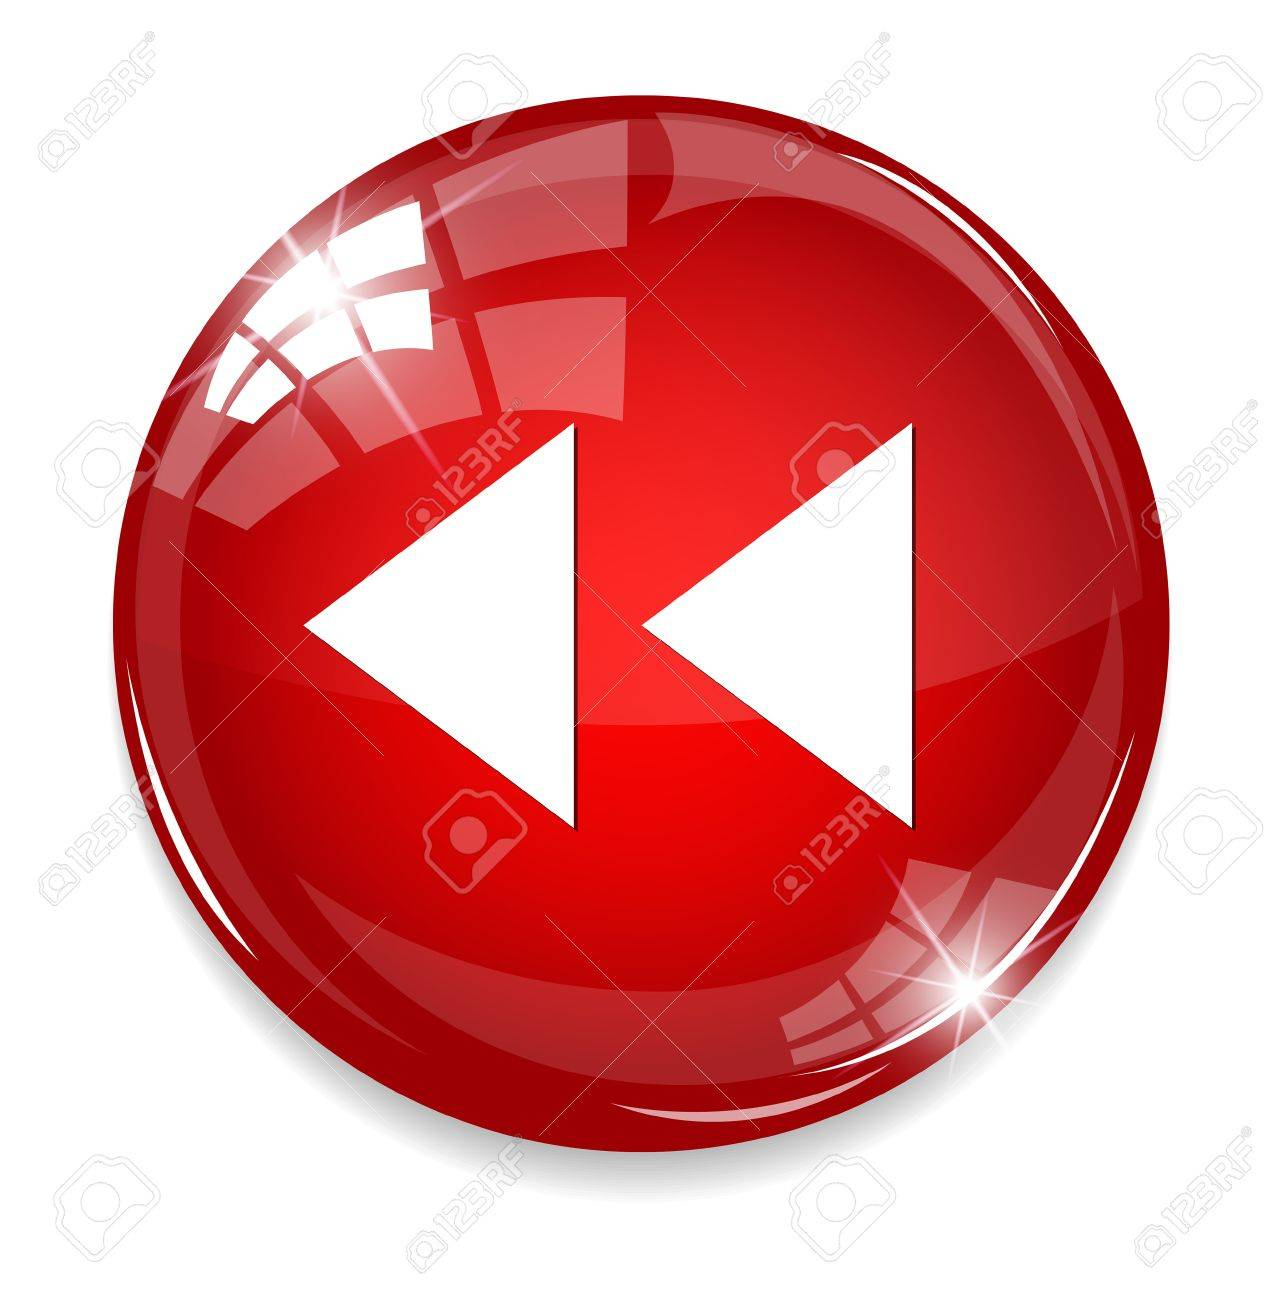 multimedia player button - 32215514